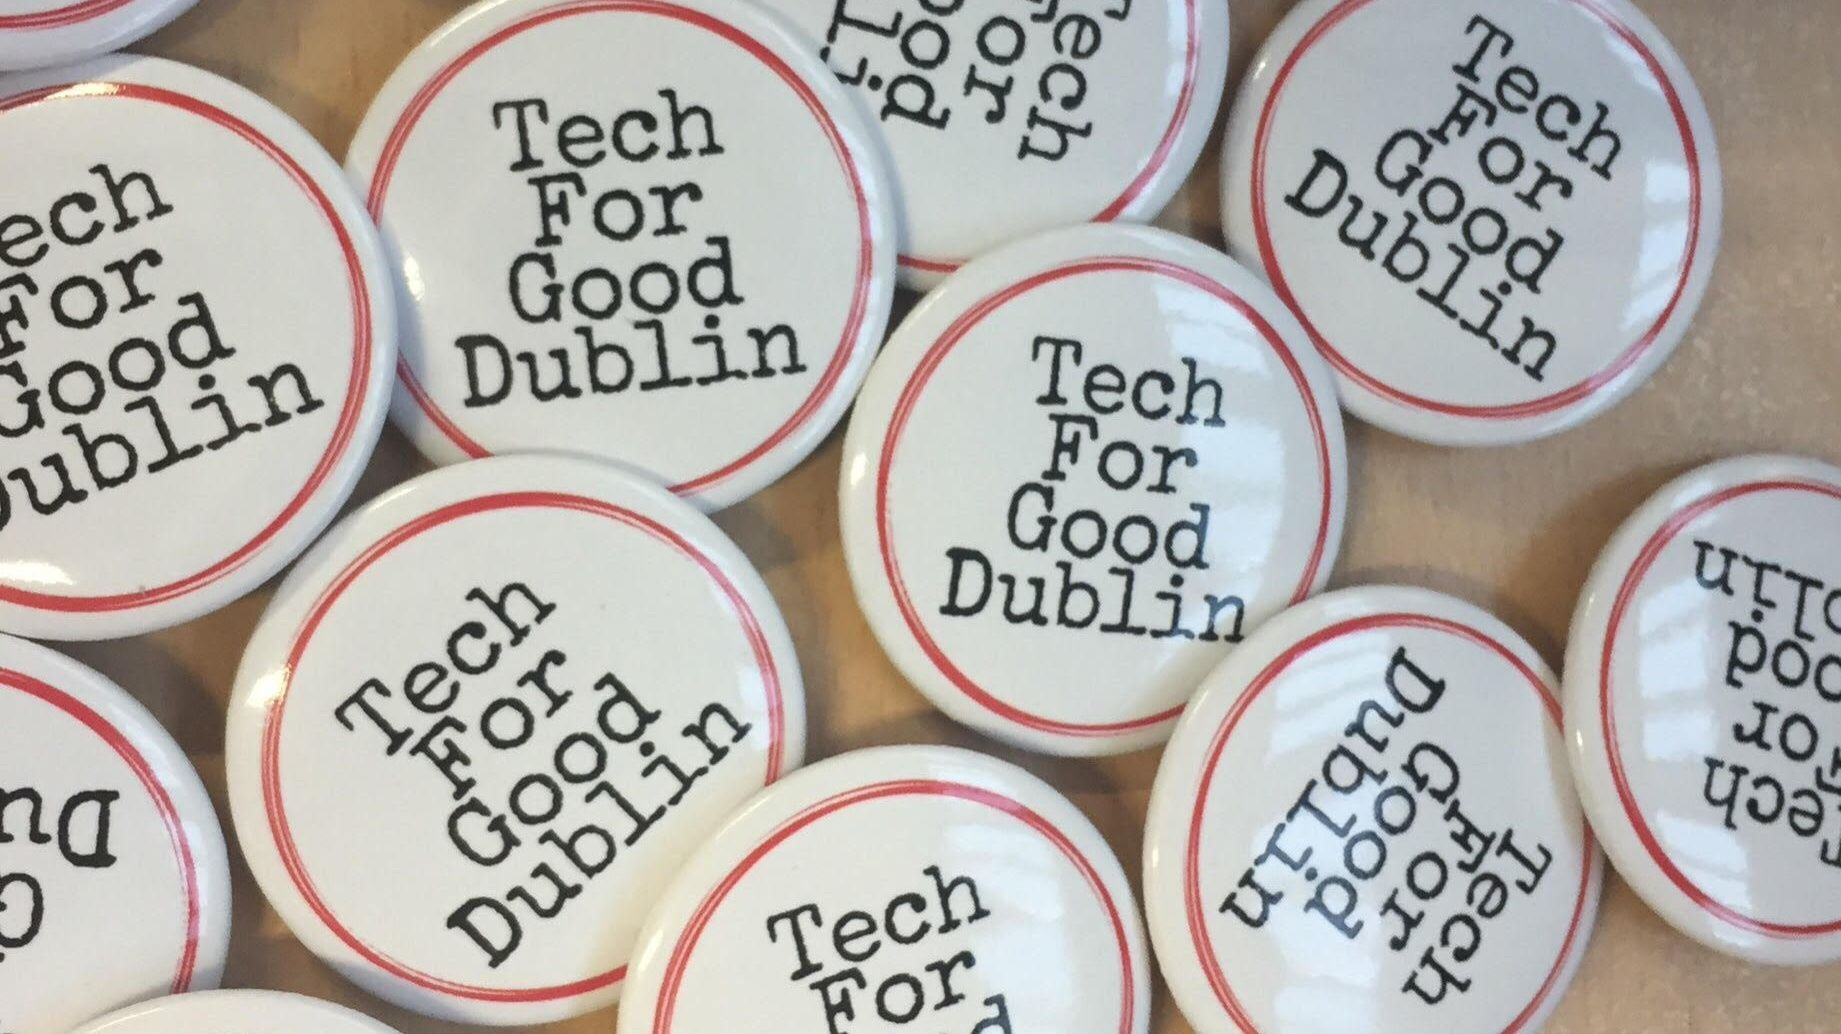 Tech For Good Dublin